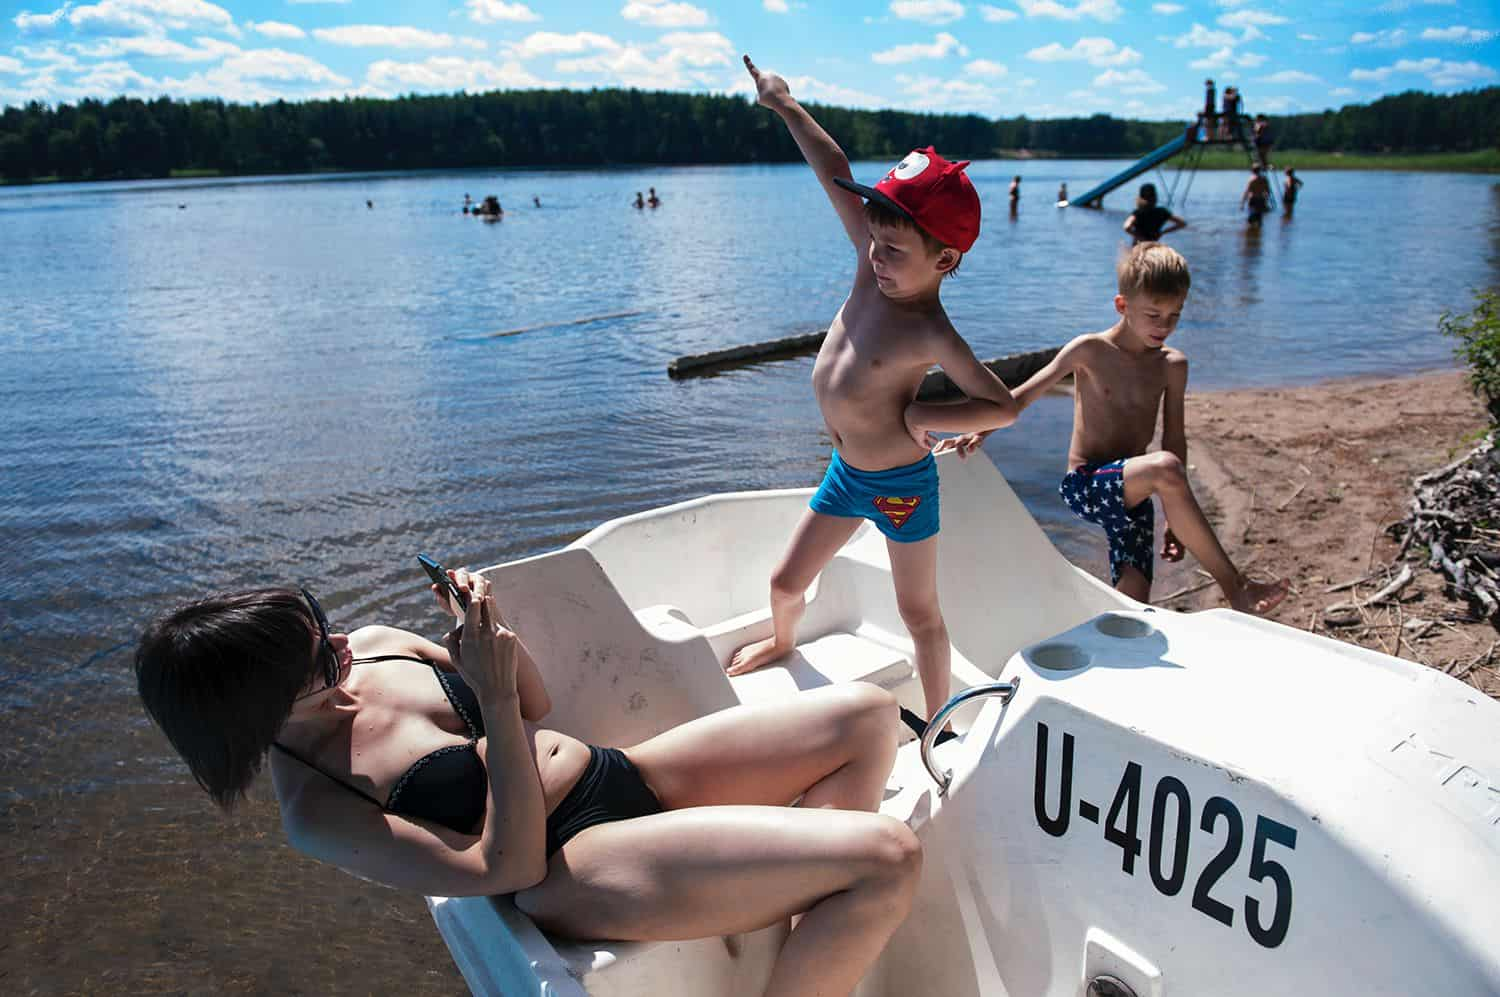 A little boy in a Superman bathing suit poses for his mom while standing on a peddle boat at the lake